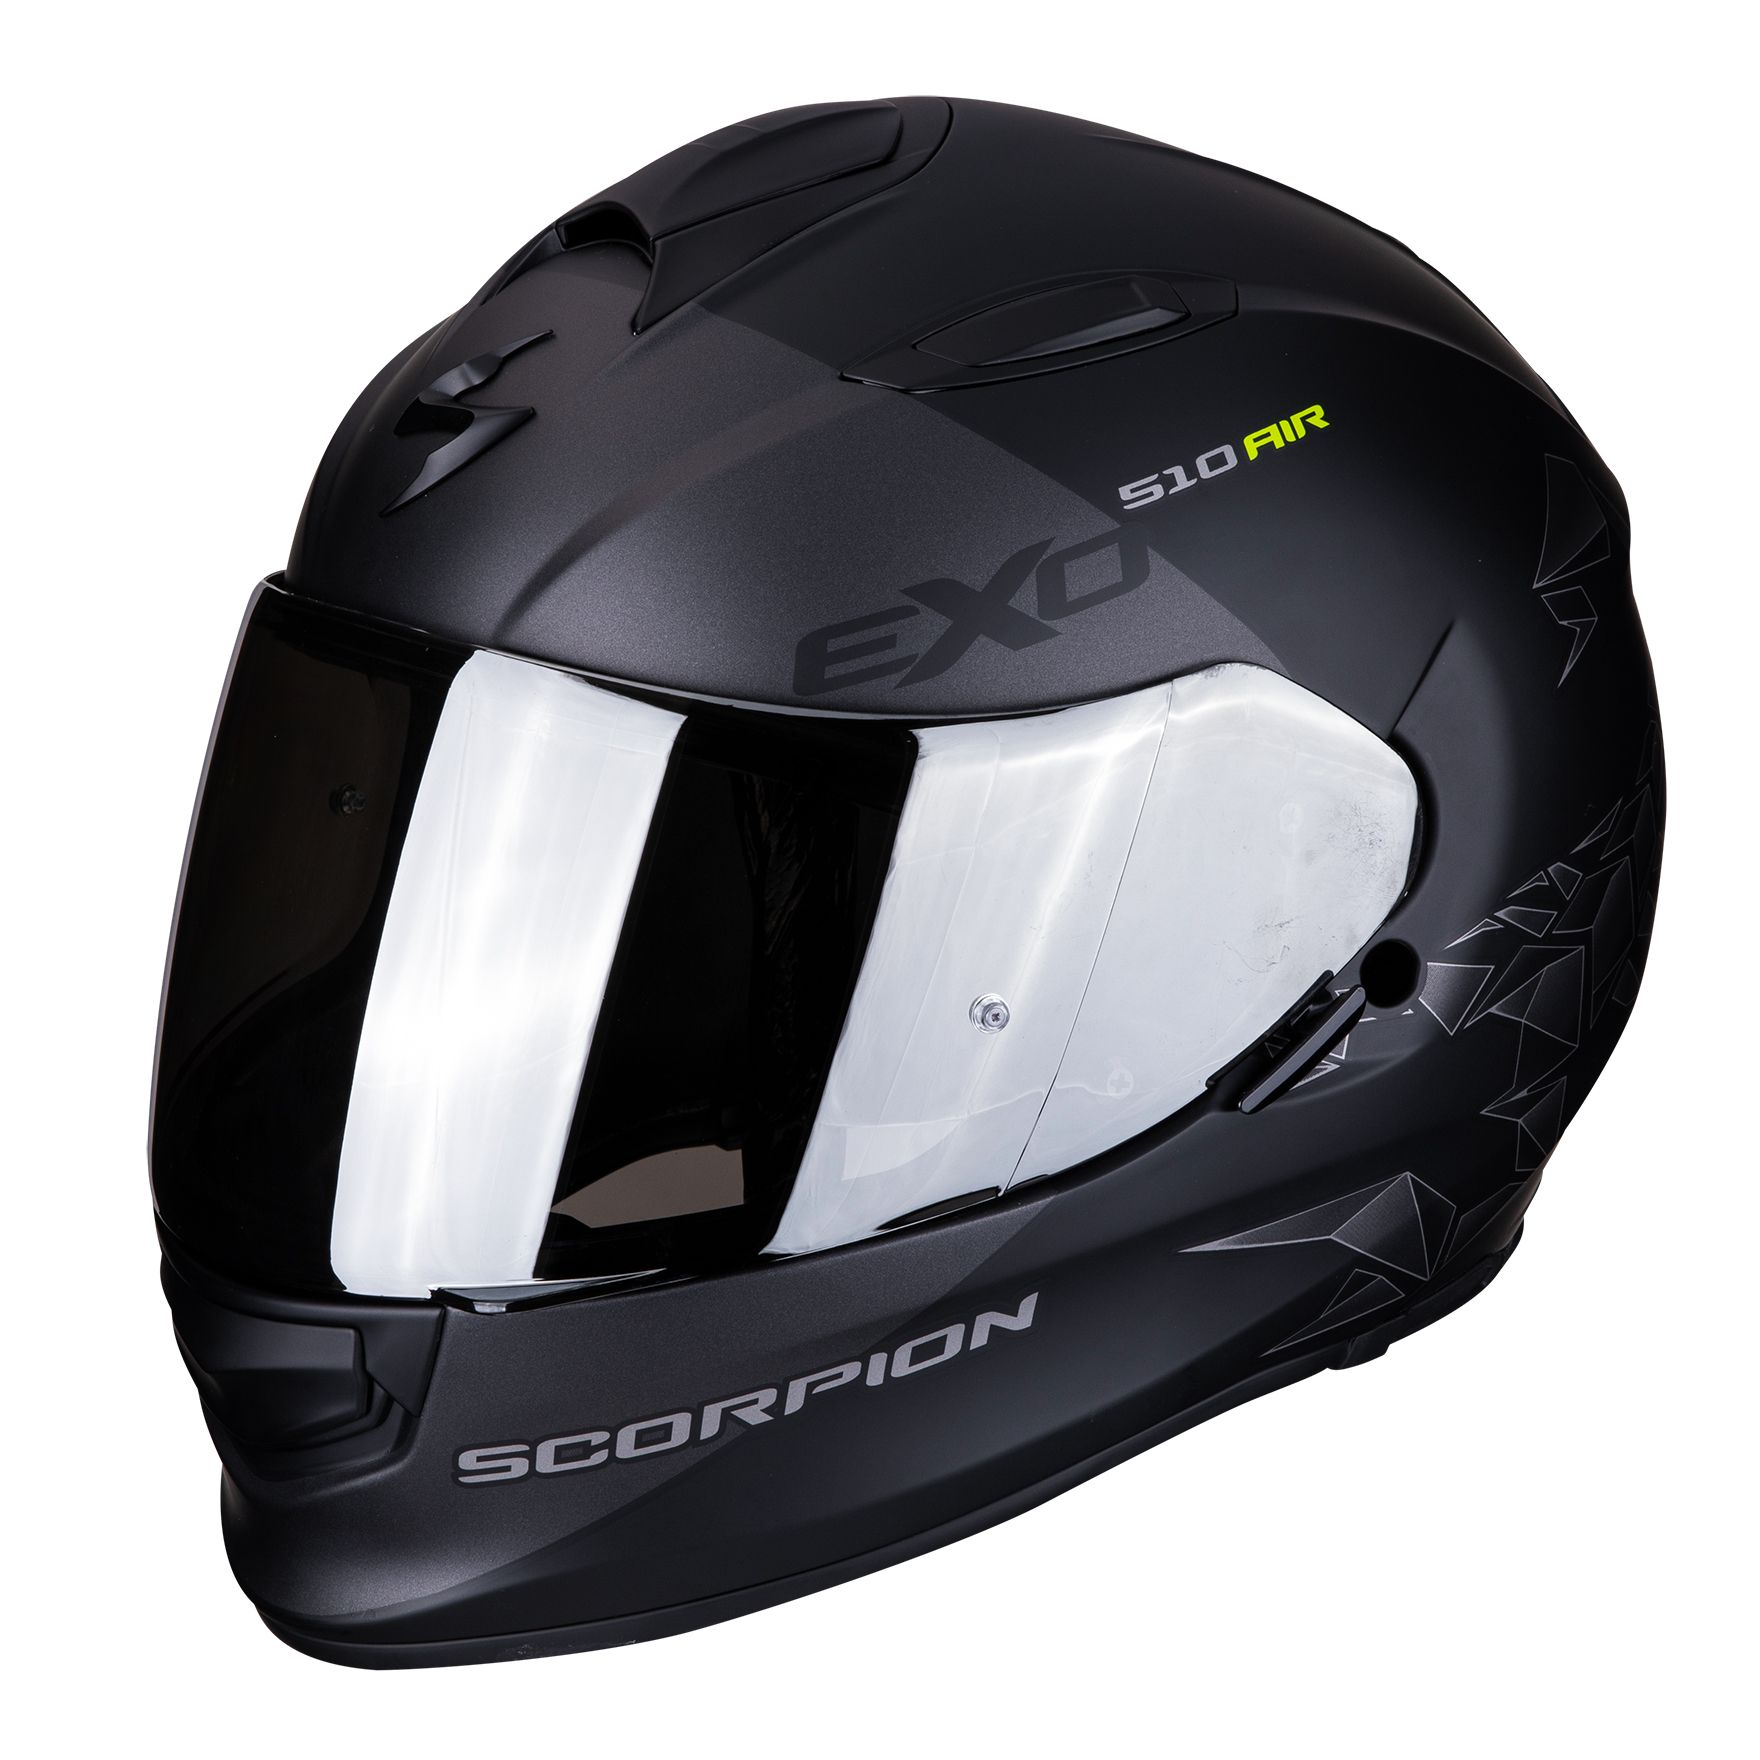 Casque Scorpion Exo EXO-510 AIR - PIQUE - MATT